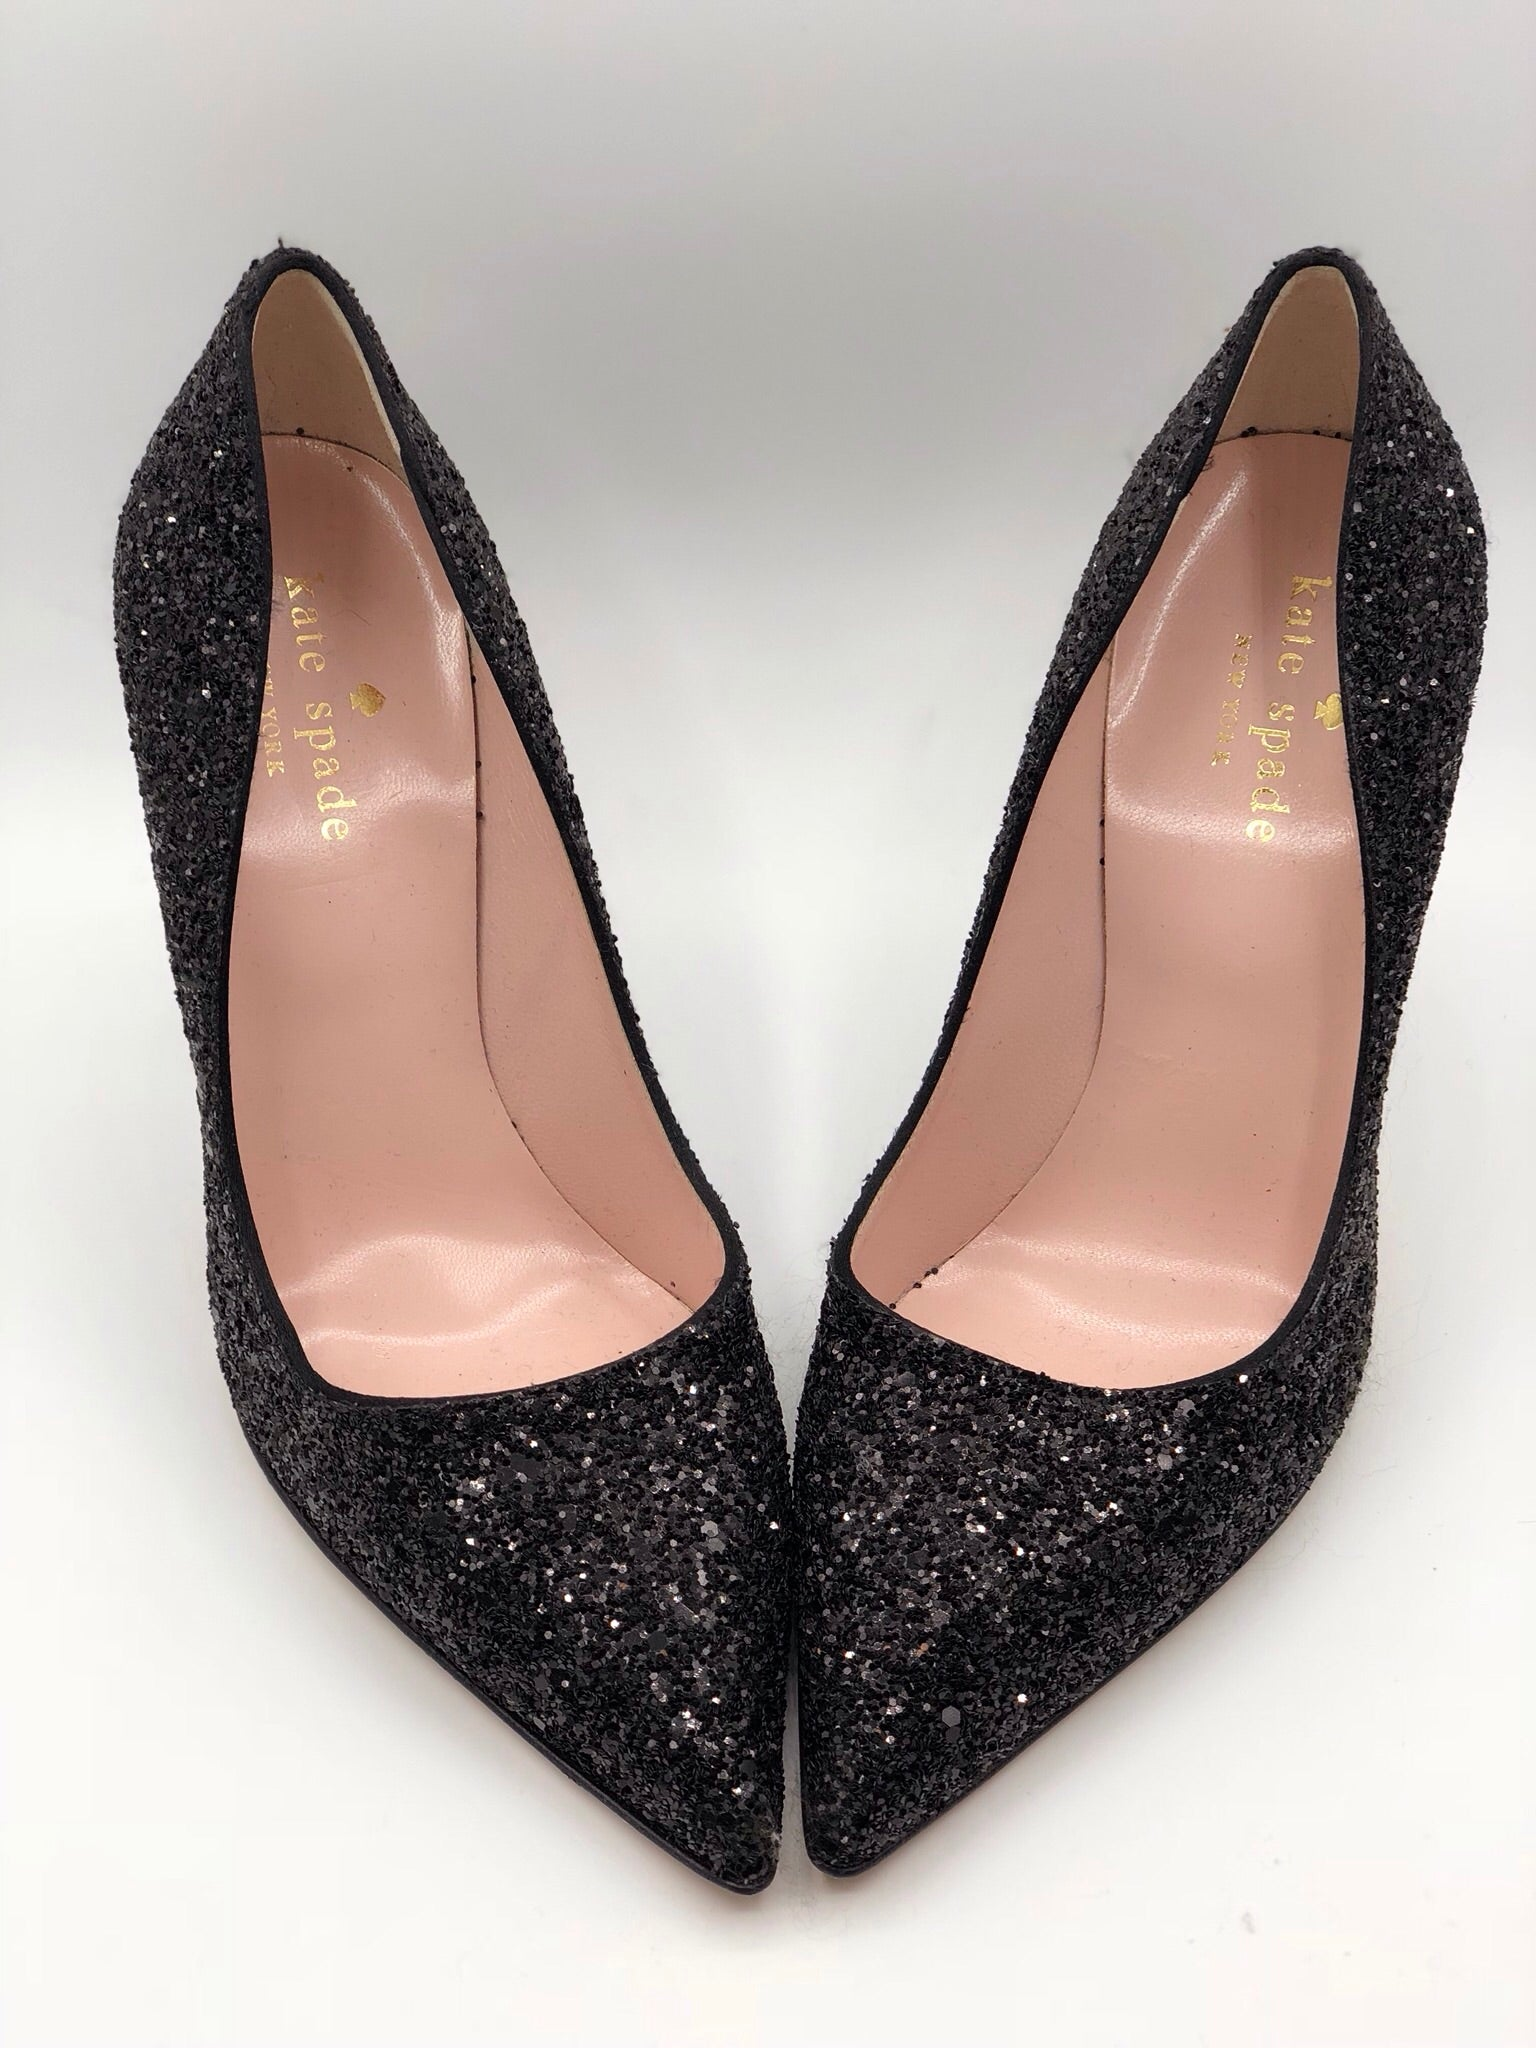 991c3a9ab764 ... Load image into Gallery viewer, Kate Spade - Sparkle Heels